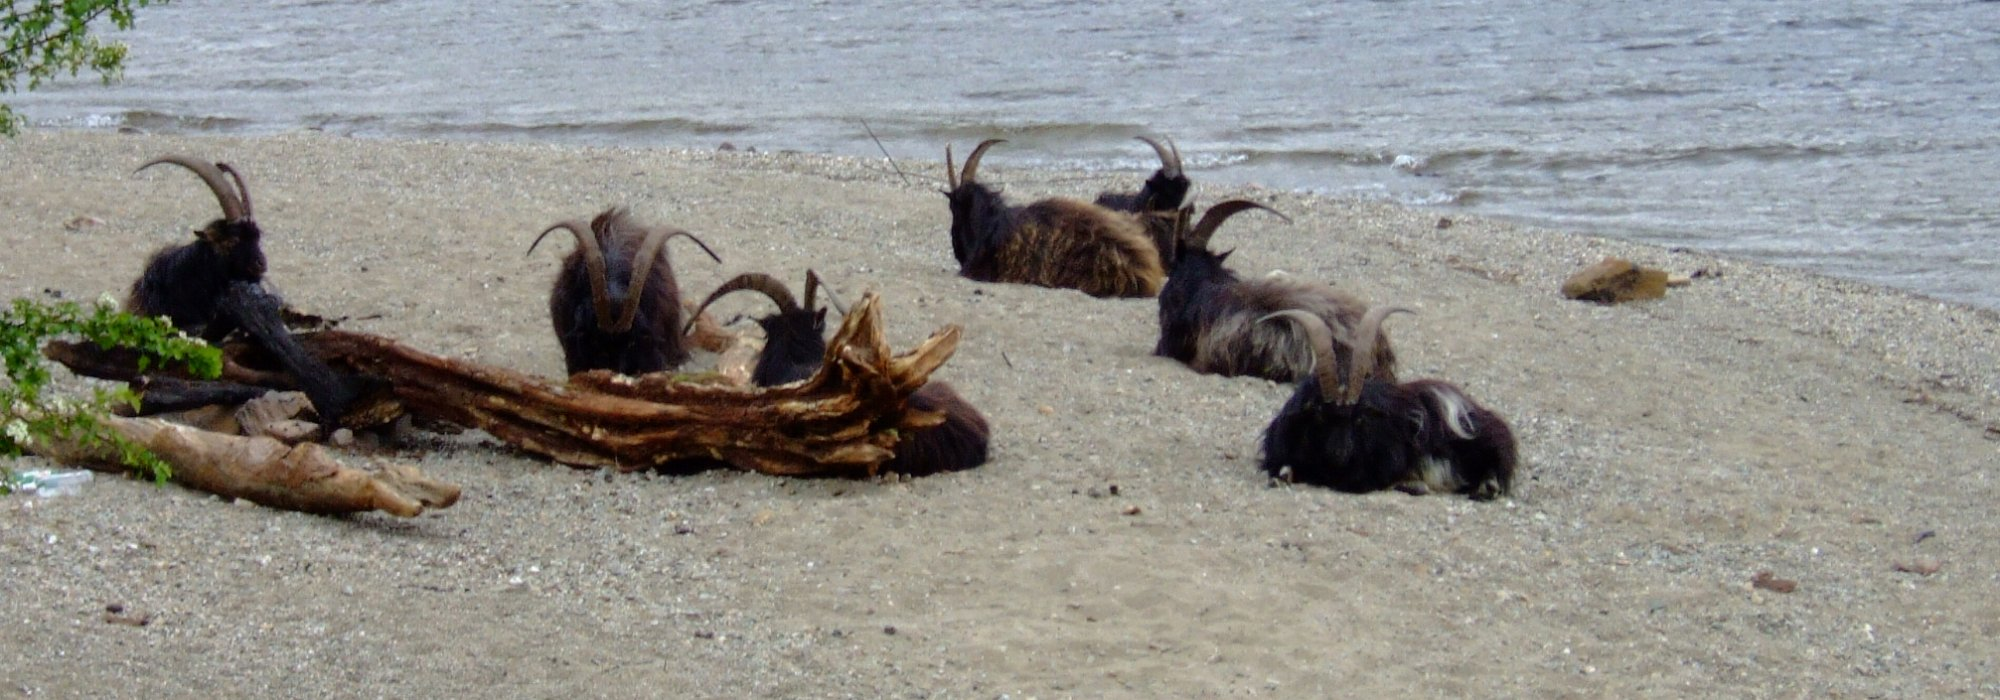 Feral goats enjoying the beach